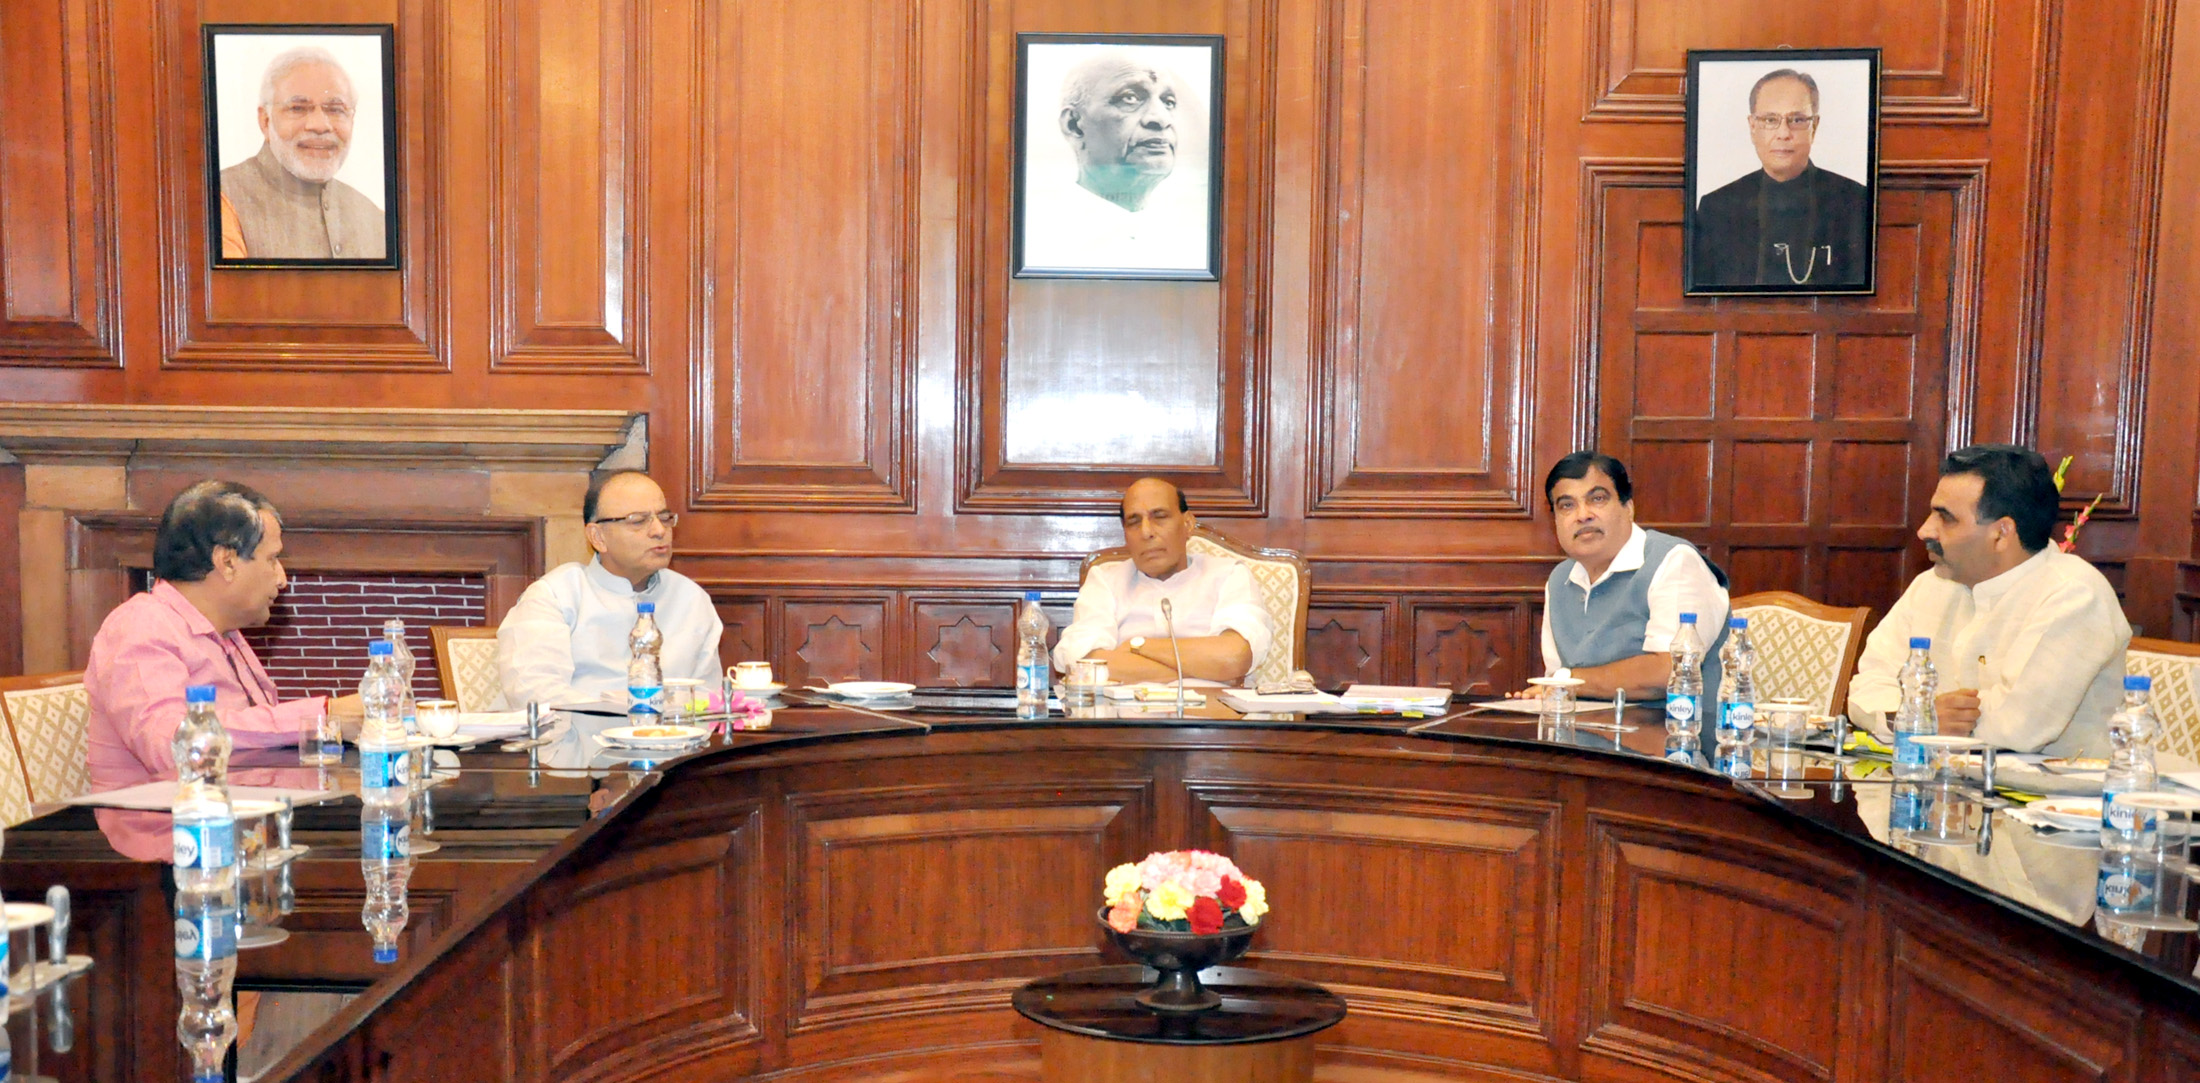 The Union Home Minister, Shri Rajnath Singh chairing a meeting to discuss amendments to the Pesticides Management Bill, 2008, in New Delhi on September 30, 2015. The Union Minister for Finance, Corporate Affairs and Information & Broadcasting, Shri Arun Jaitley, the Union Minister for Railways, Shri Suresh Prabhakar Prabhu, the Union Minister for Road Transport & Highways and Shipping, Shri Nitin Gadkari and the Minister of State for Agriculture and Farmers Welfare, Dr. Sanjeev Kumar Balyan are also seen.